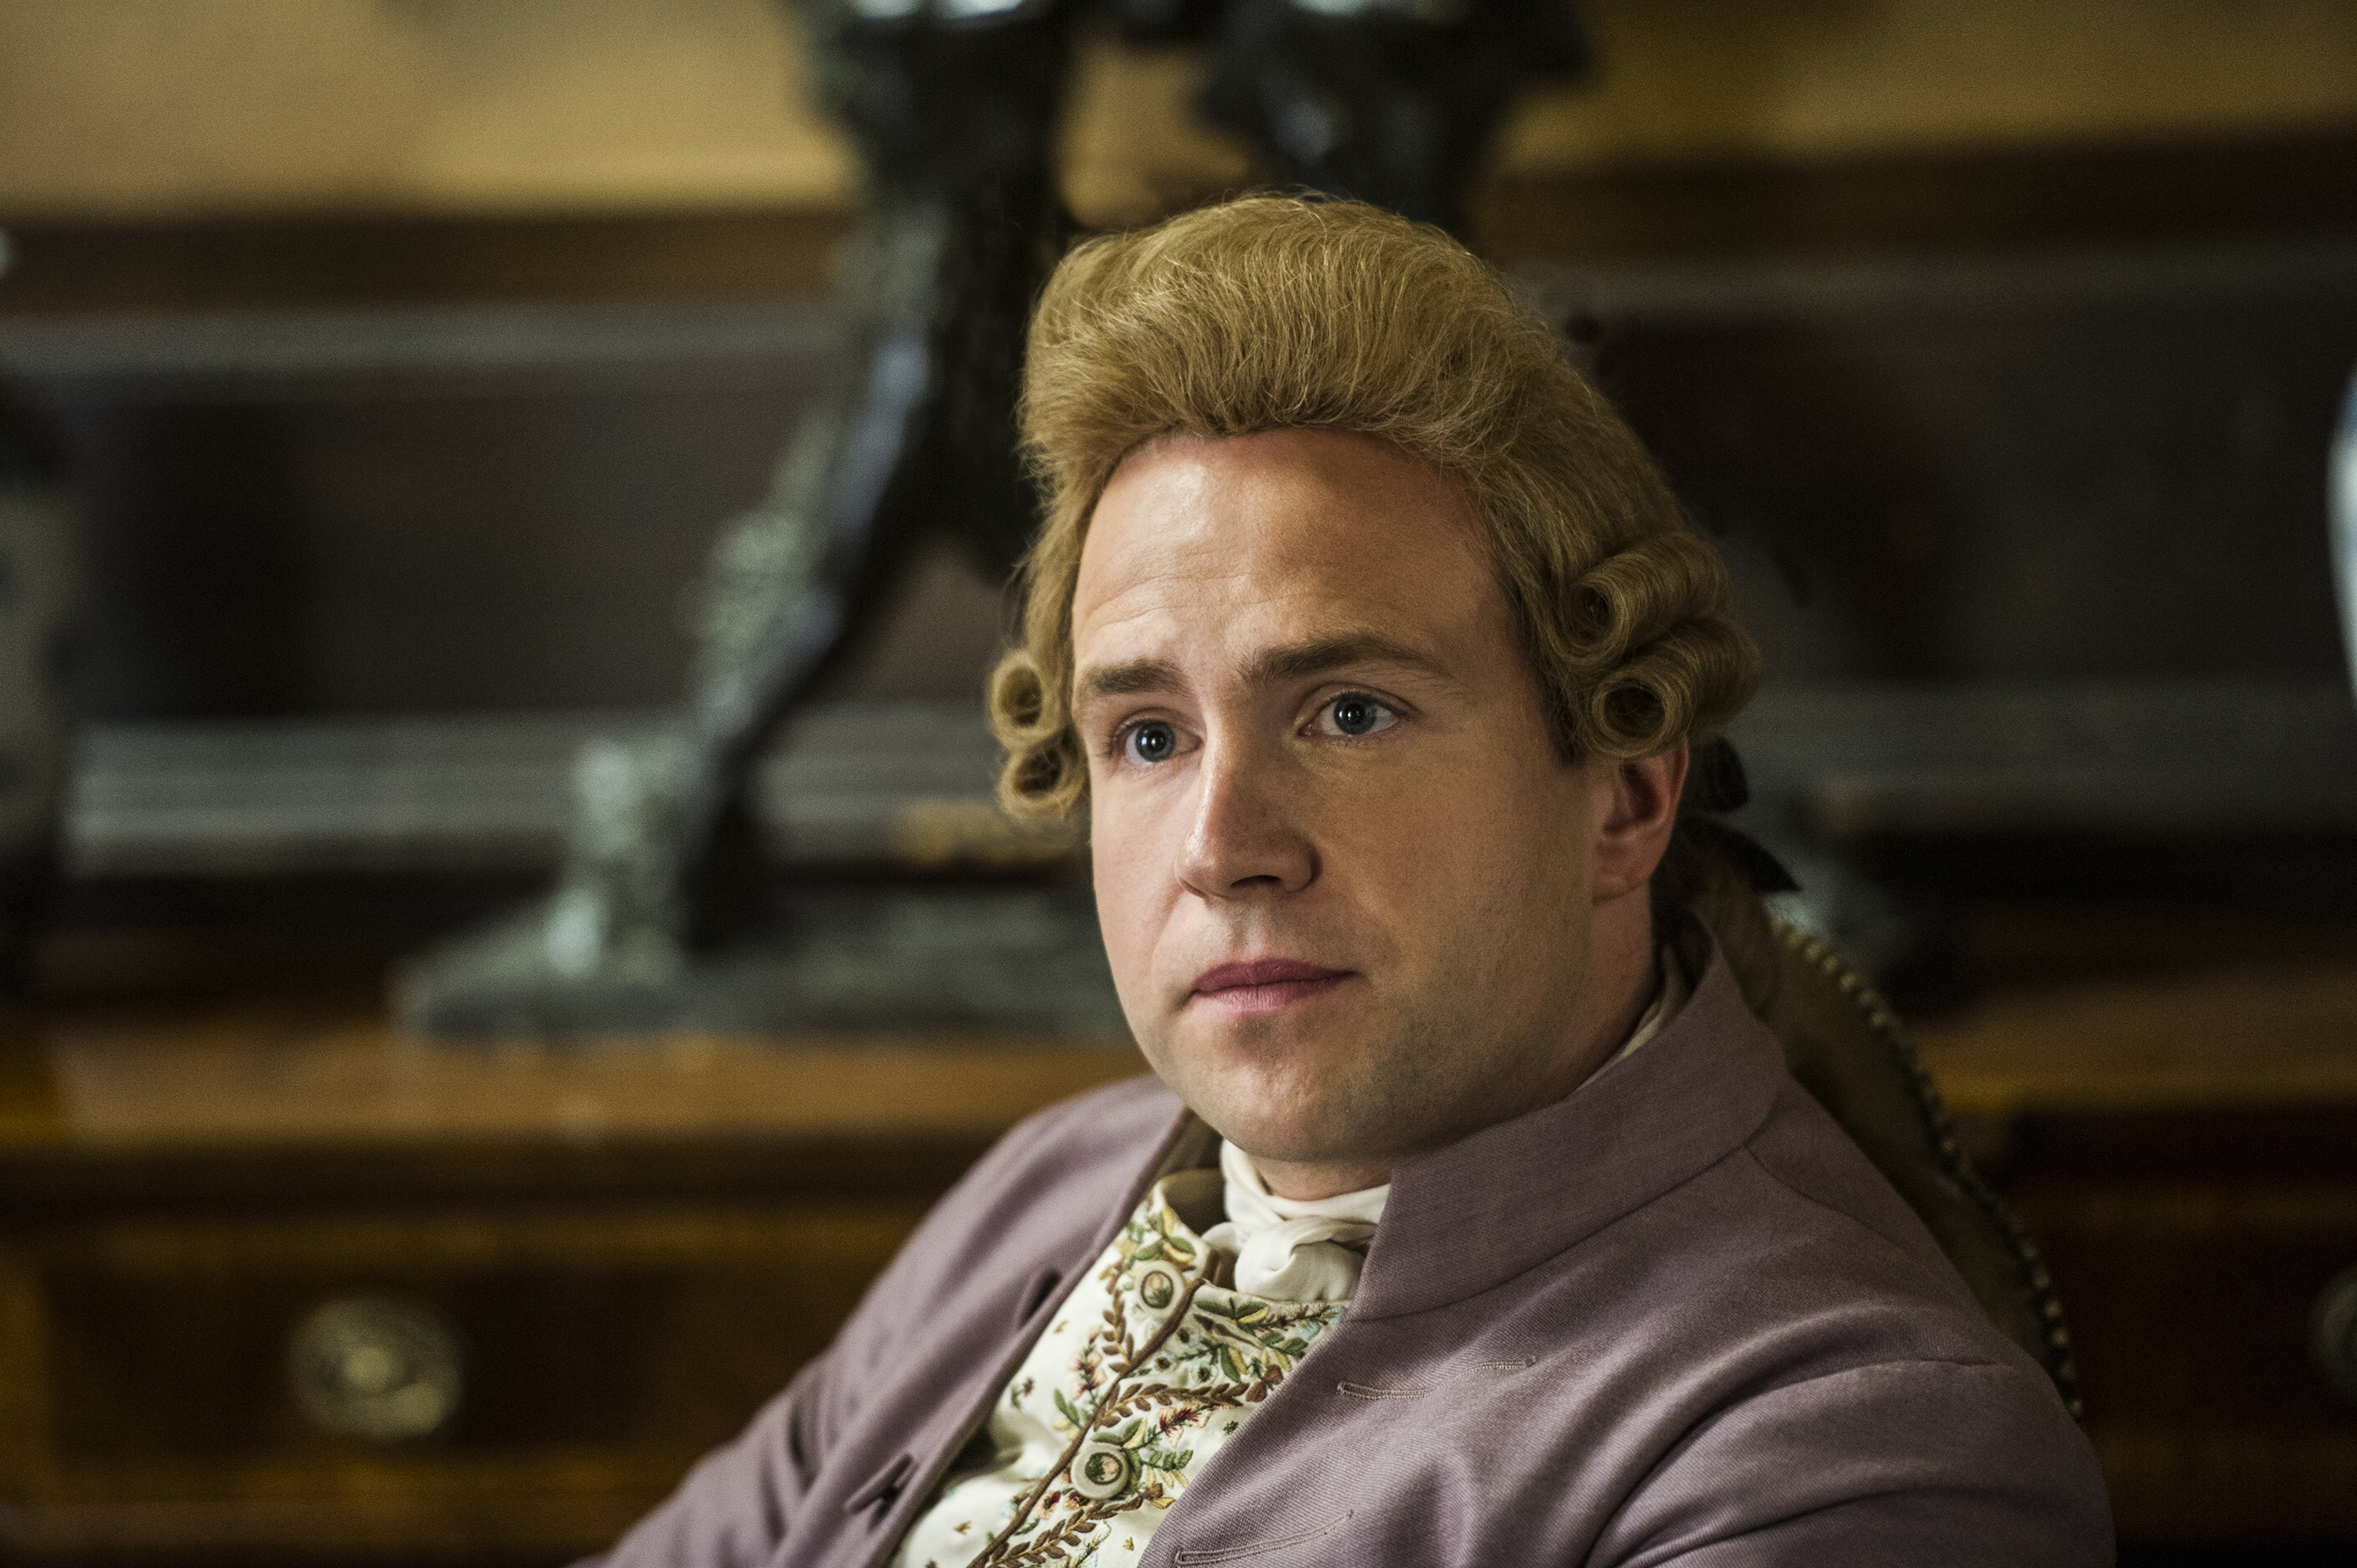 Rafe Spall As John Hancock In